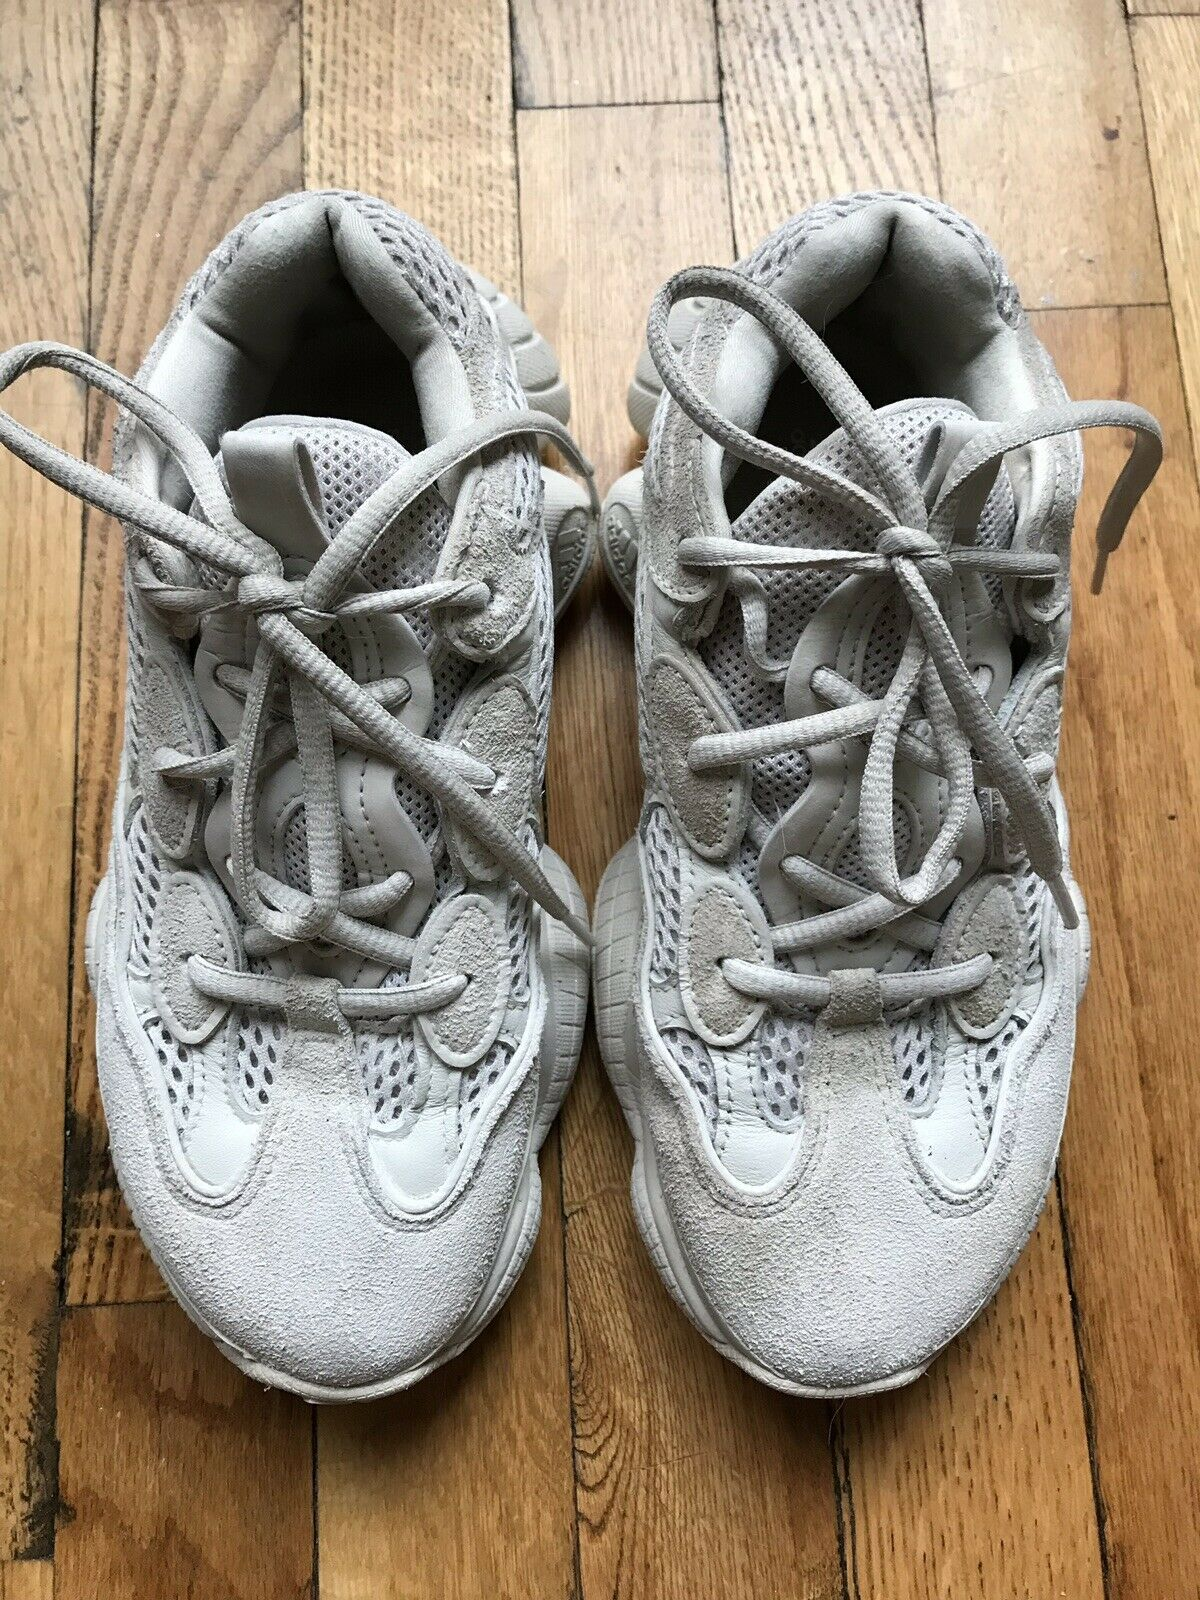 5b29b47ca Yeezy Size 4 US Adidas Ortholite zzmbza4205-Athletic Shoes - hunting ...